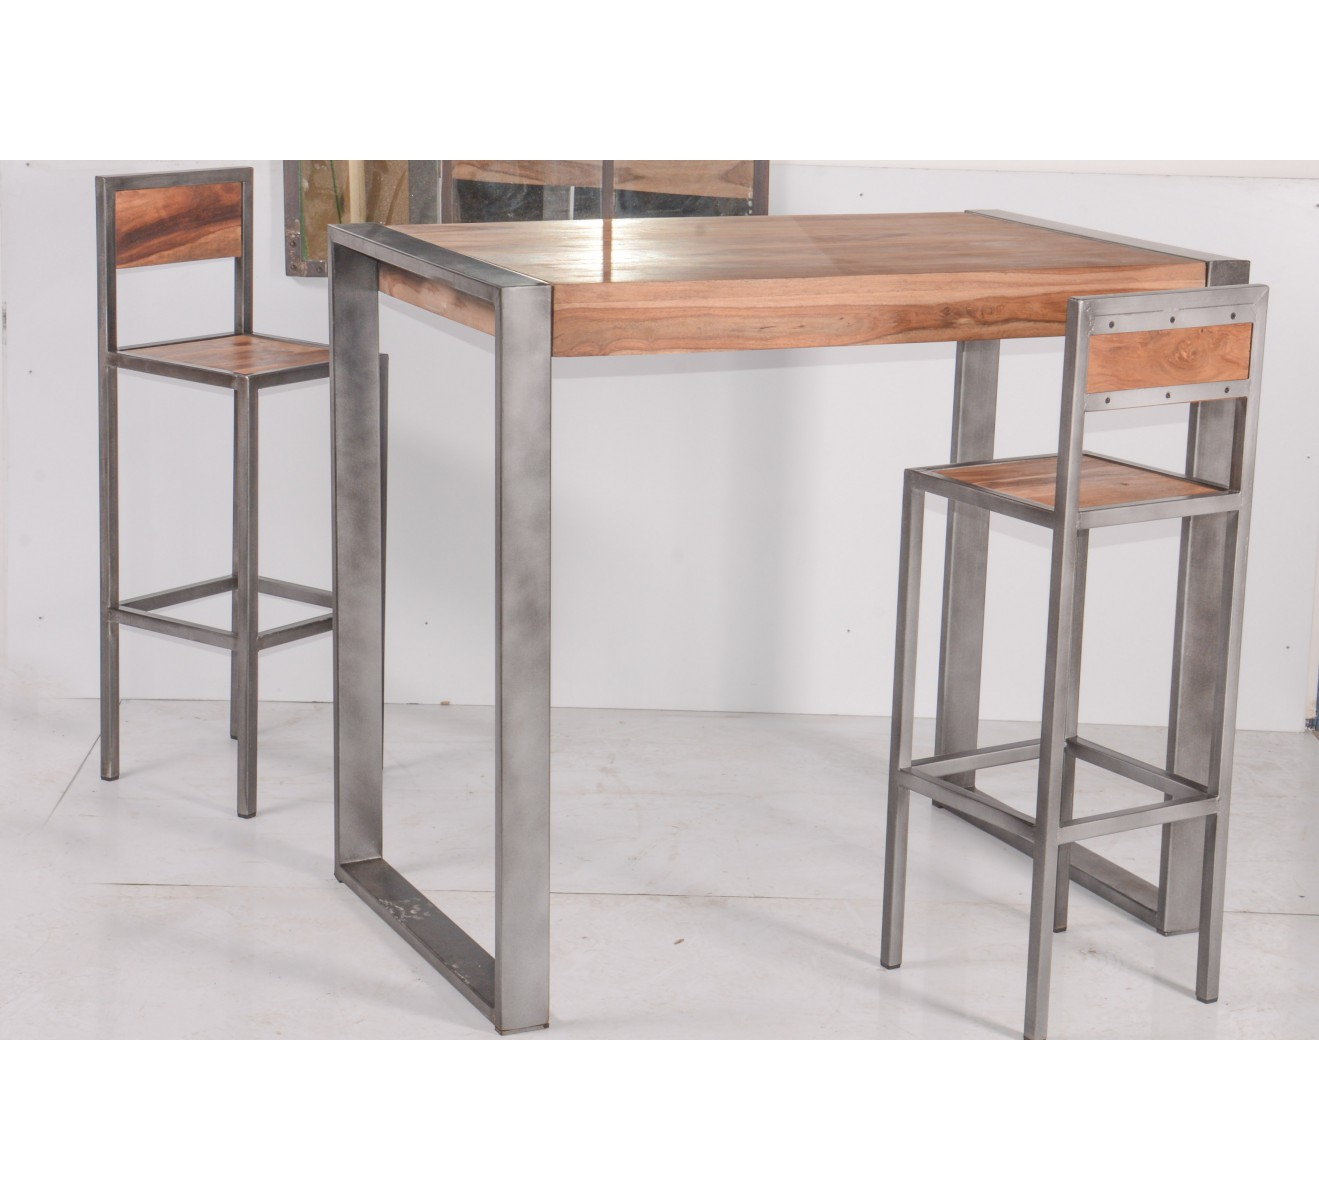 Tabouret de bar industriel en m tal et bois 39 industry 6748 for Table haute bois